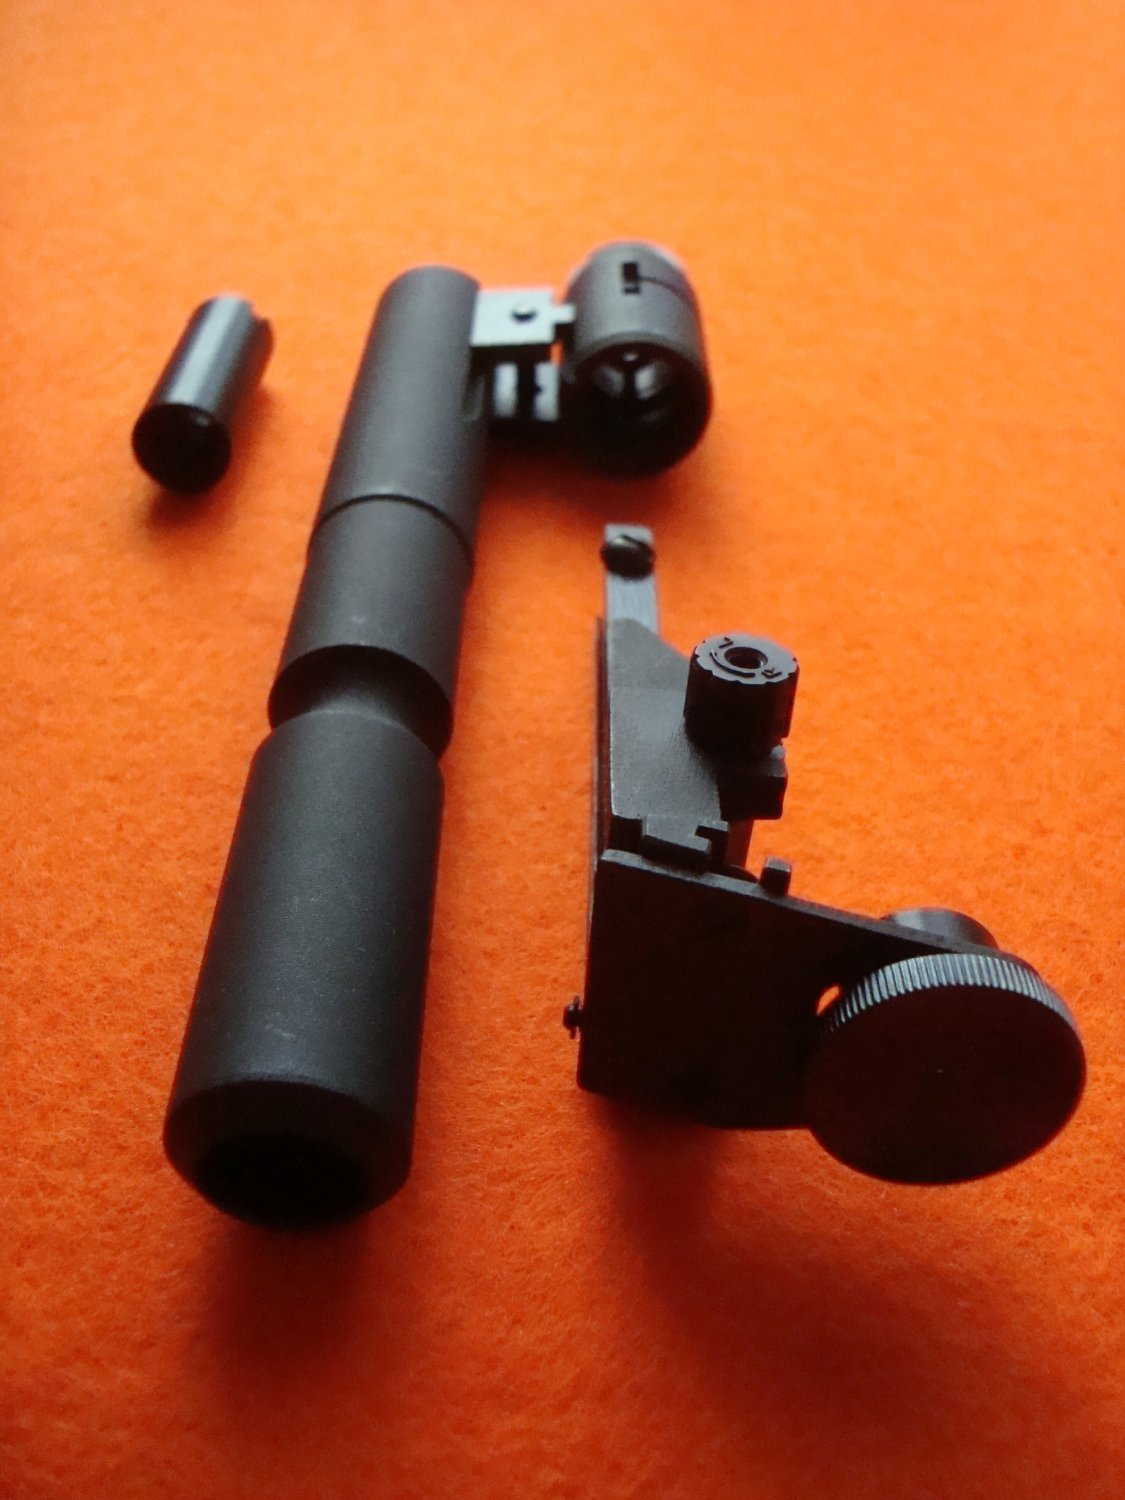 Aim parts mp-61, mp-60 upgrade kit of sight devices, sport design on accuracy, details made to order